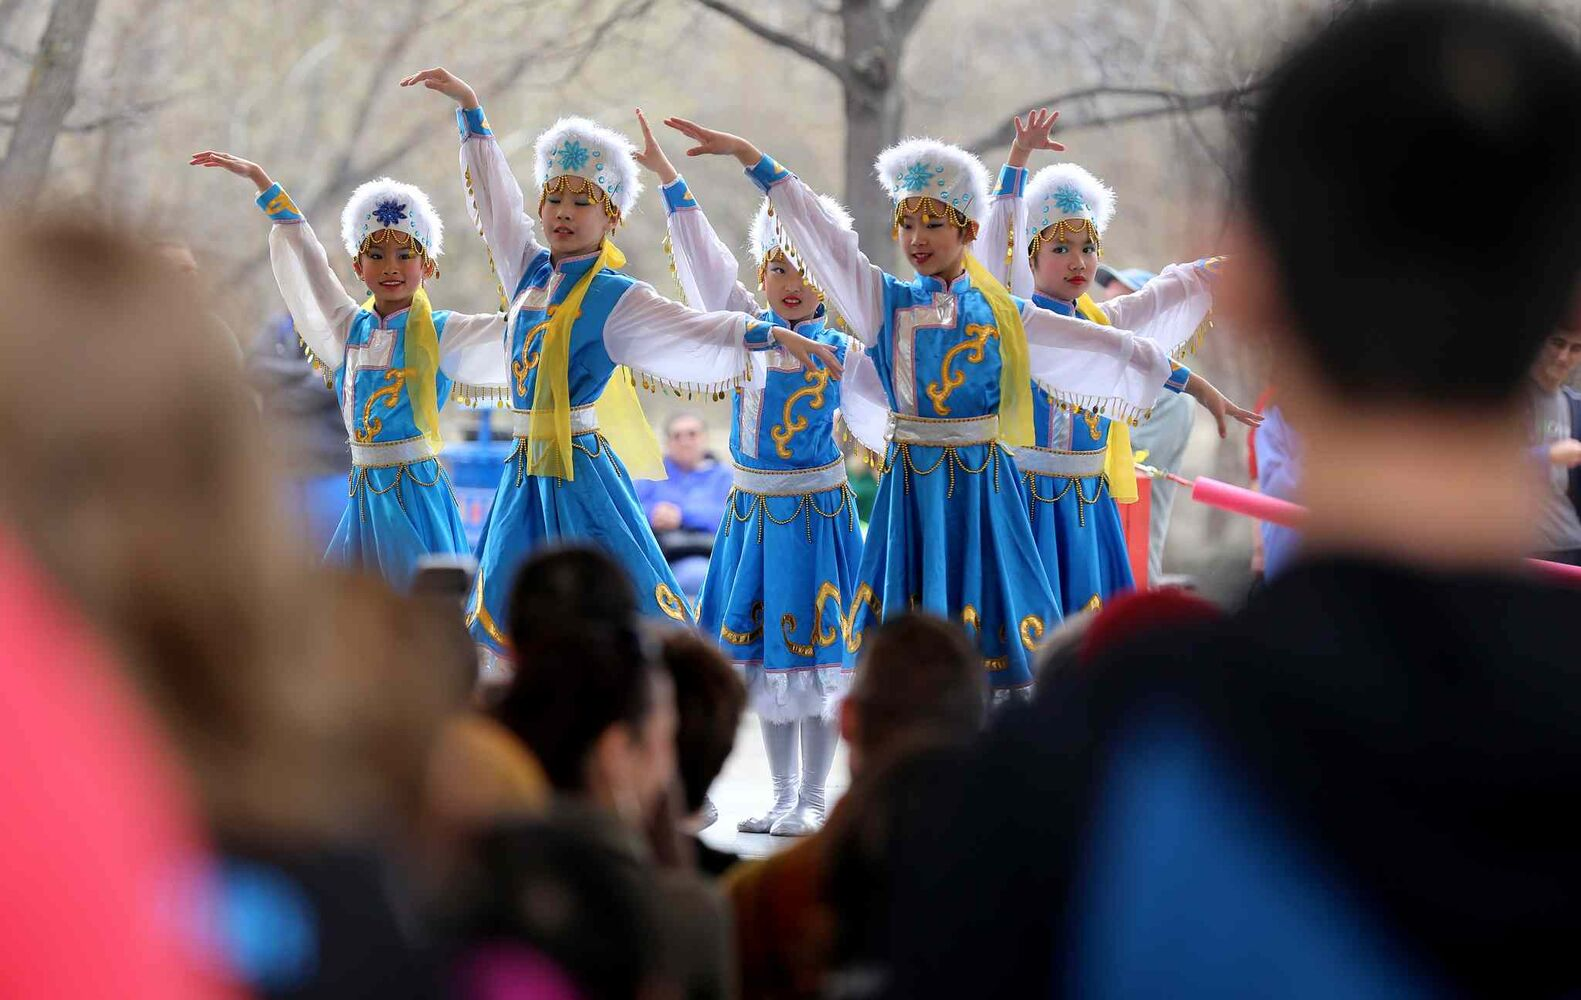 Spectators enjoy a performance by the Great Wall Performing Arts school  during Asian Heritage Month celebrations at The Forks, Sunday. (TREVOR HAGAN / WINNIPEG FREE PRESS)